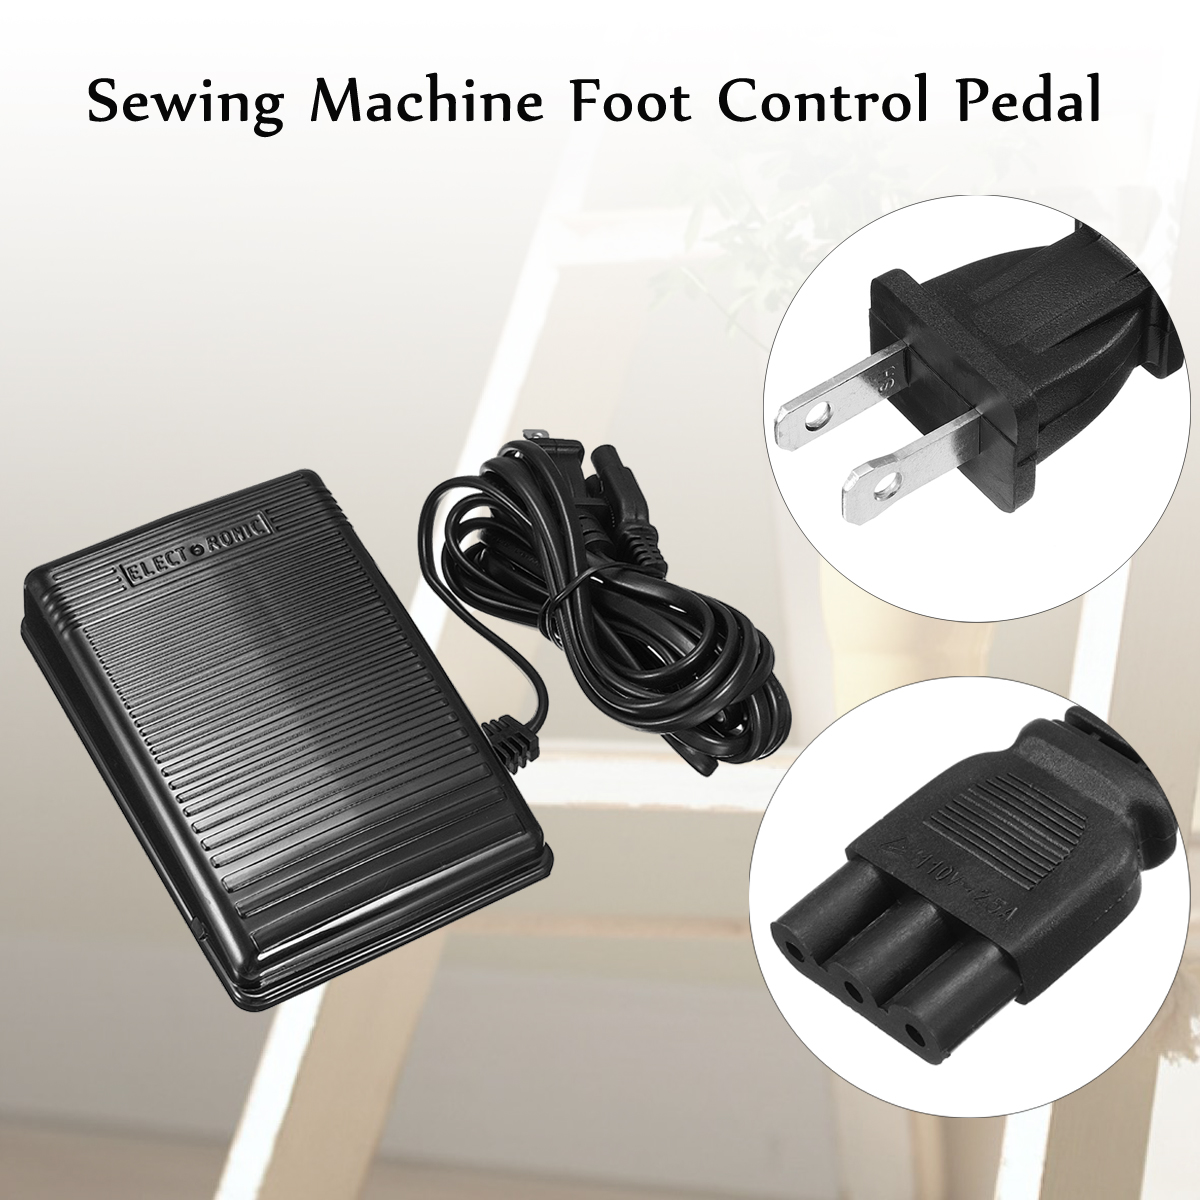 Sewing Machine Foot Speed Control Pedal For Babylock Elna Kenmore Singer Viking